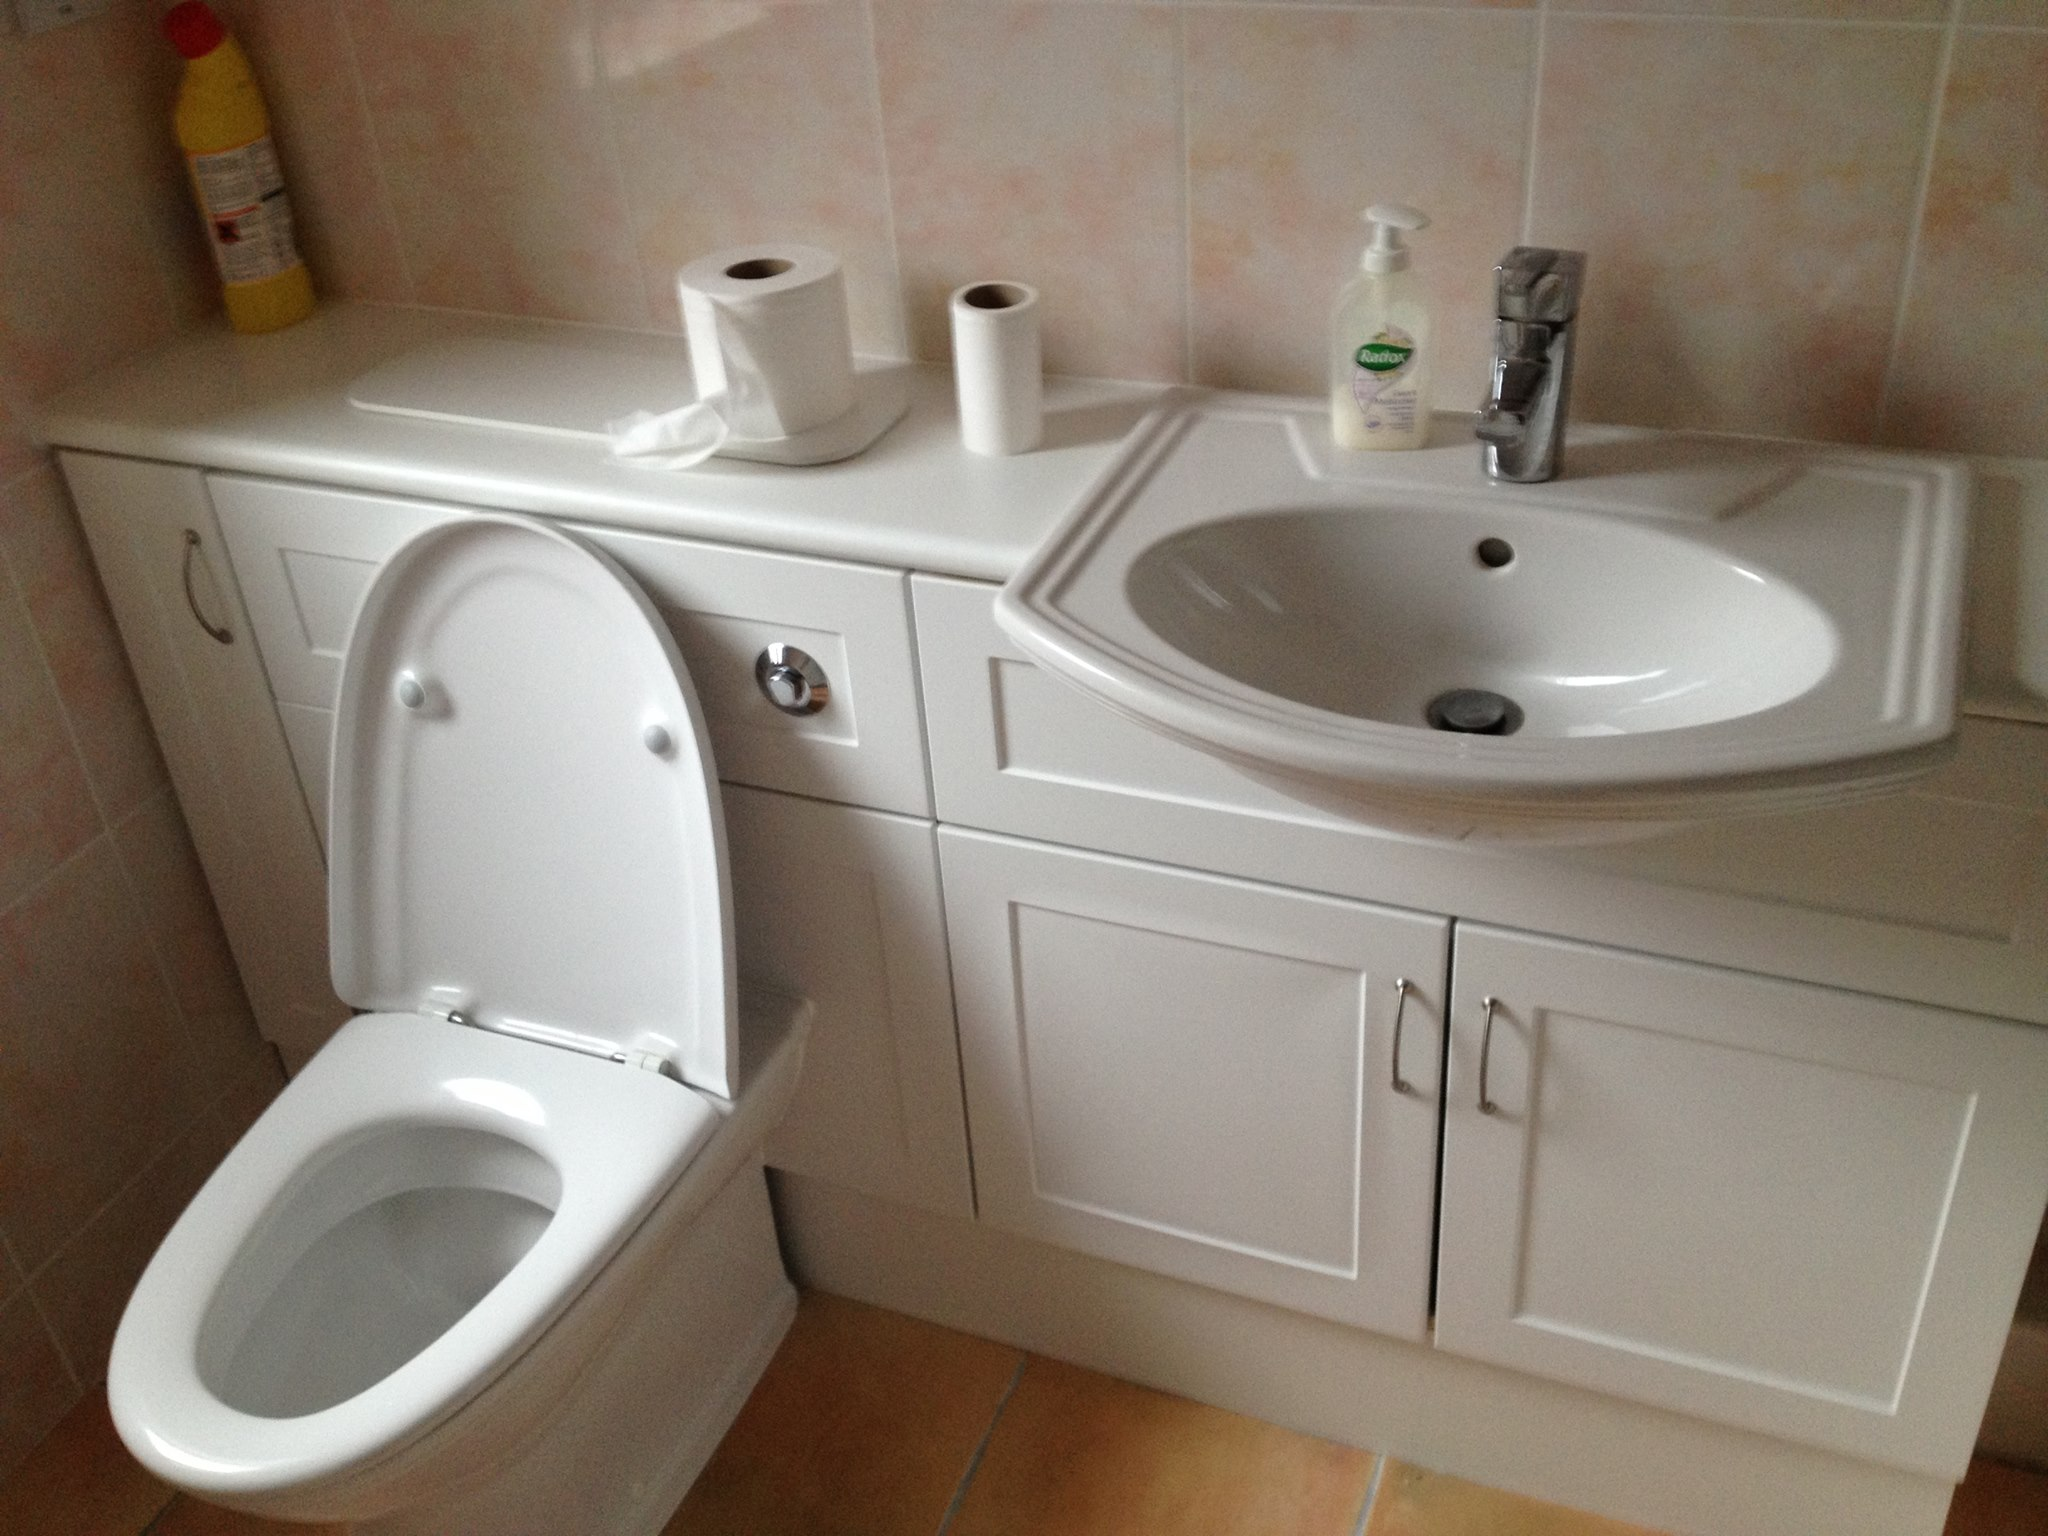 Our plumbing services: